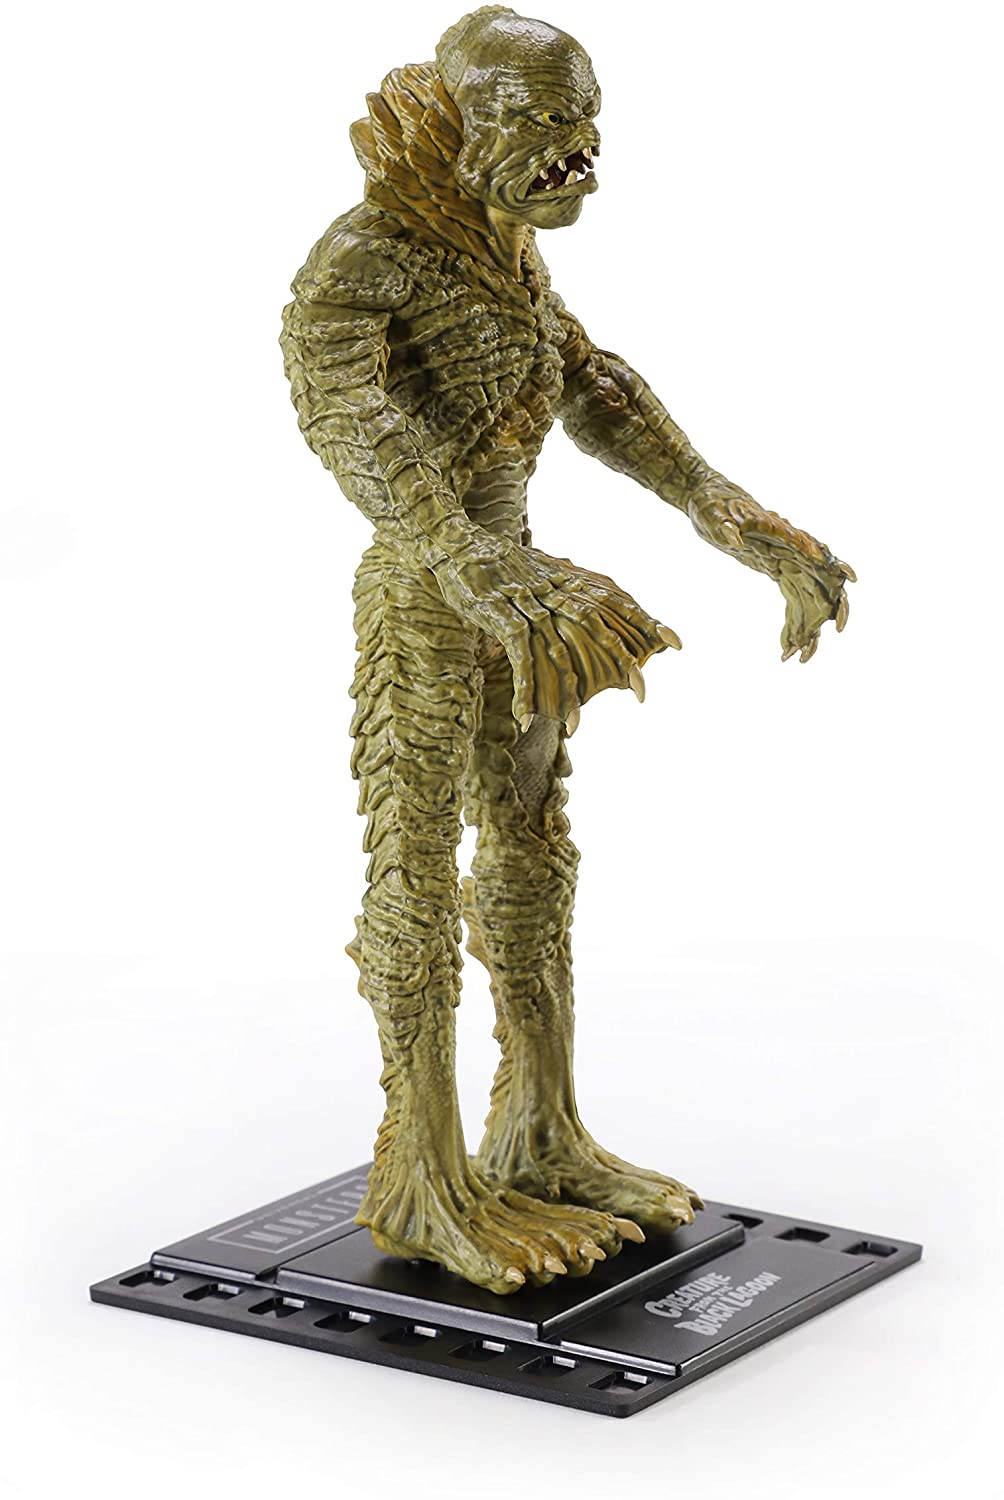 BendyFigs Universal Monsters Creature Monstro da Lagoa Negra Oficial licenciado